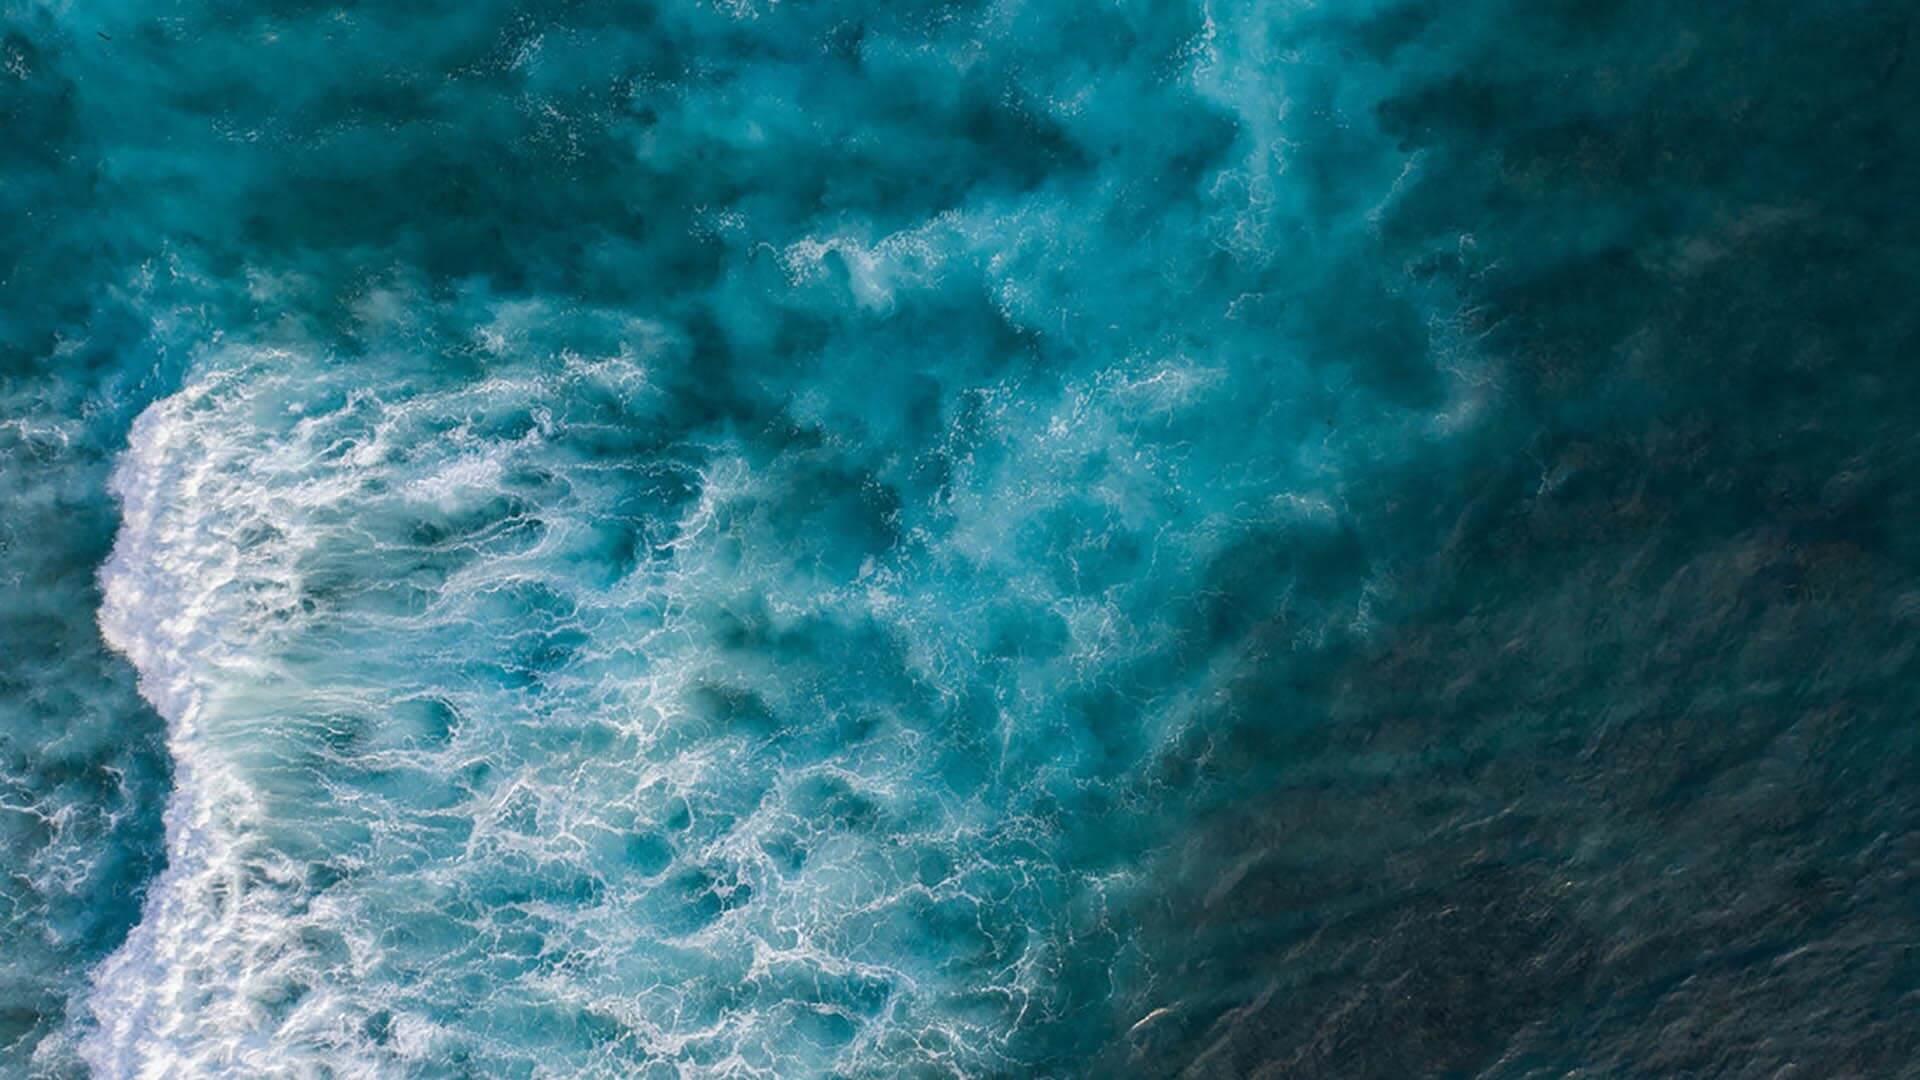 Stormy sea from above